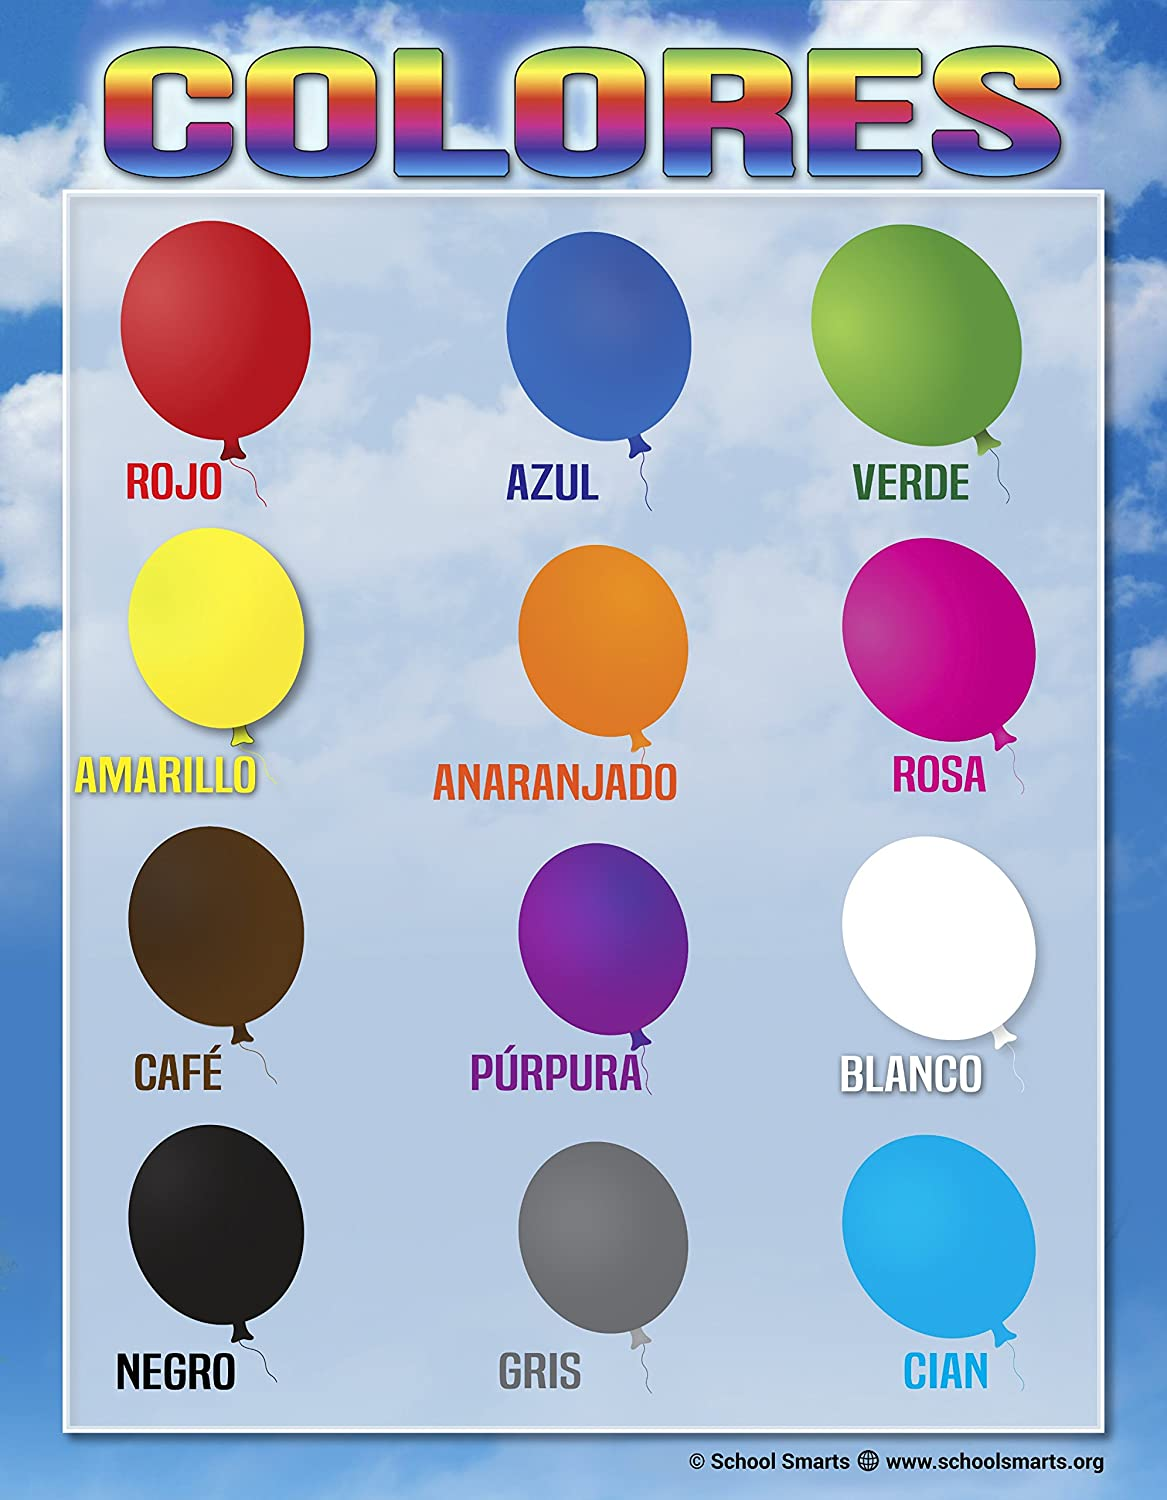 Spanish Colors Chart By School Smarts 12 Bold Colors Fully Laminated Durable Material Rolled For Protection And Sealed In A Protective Poster Sleeve